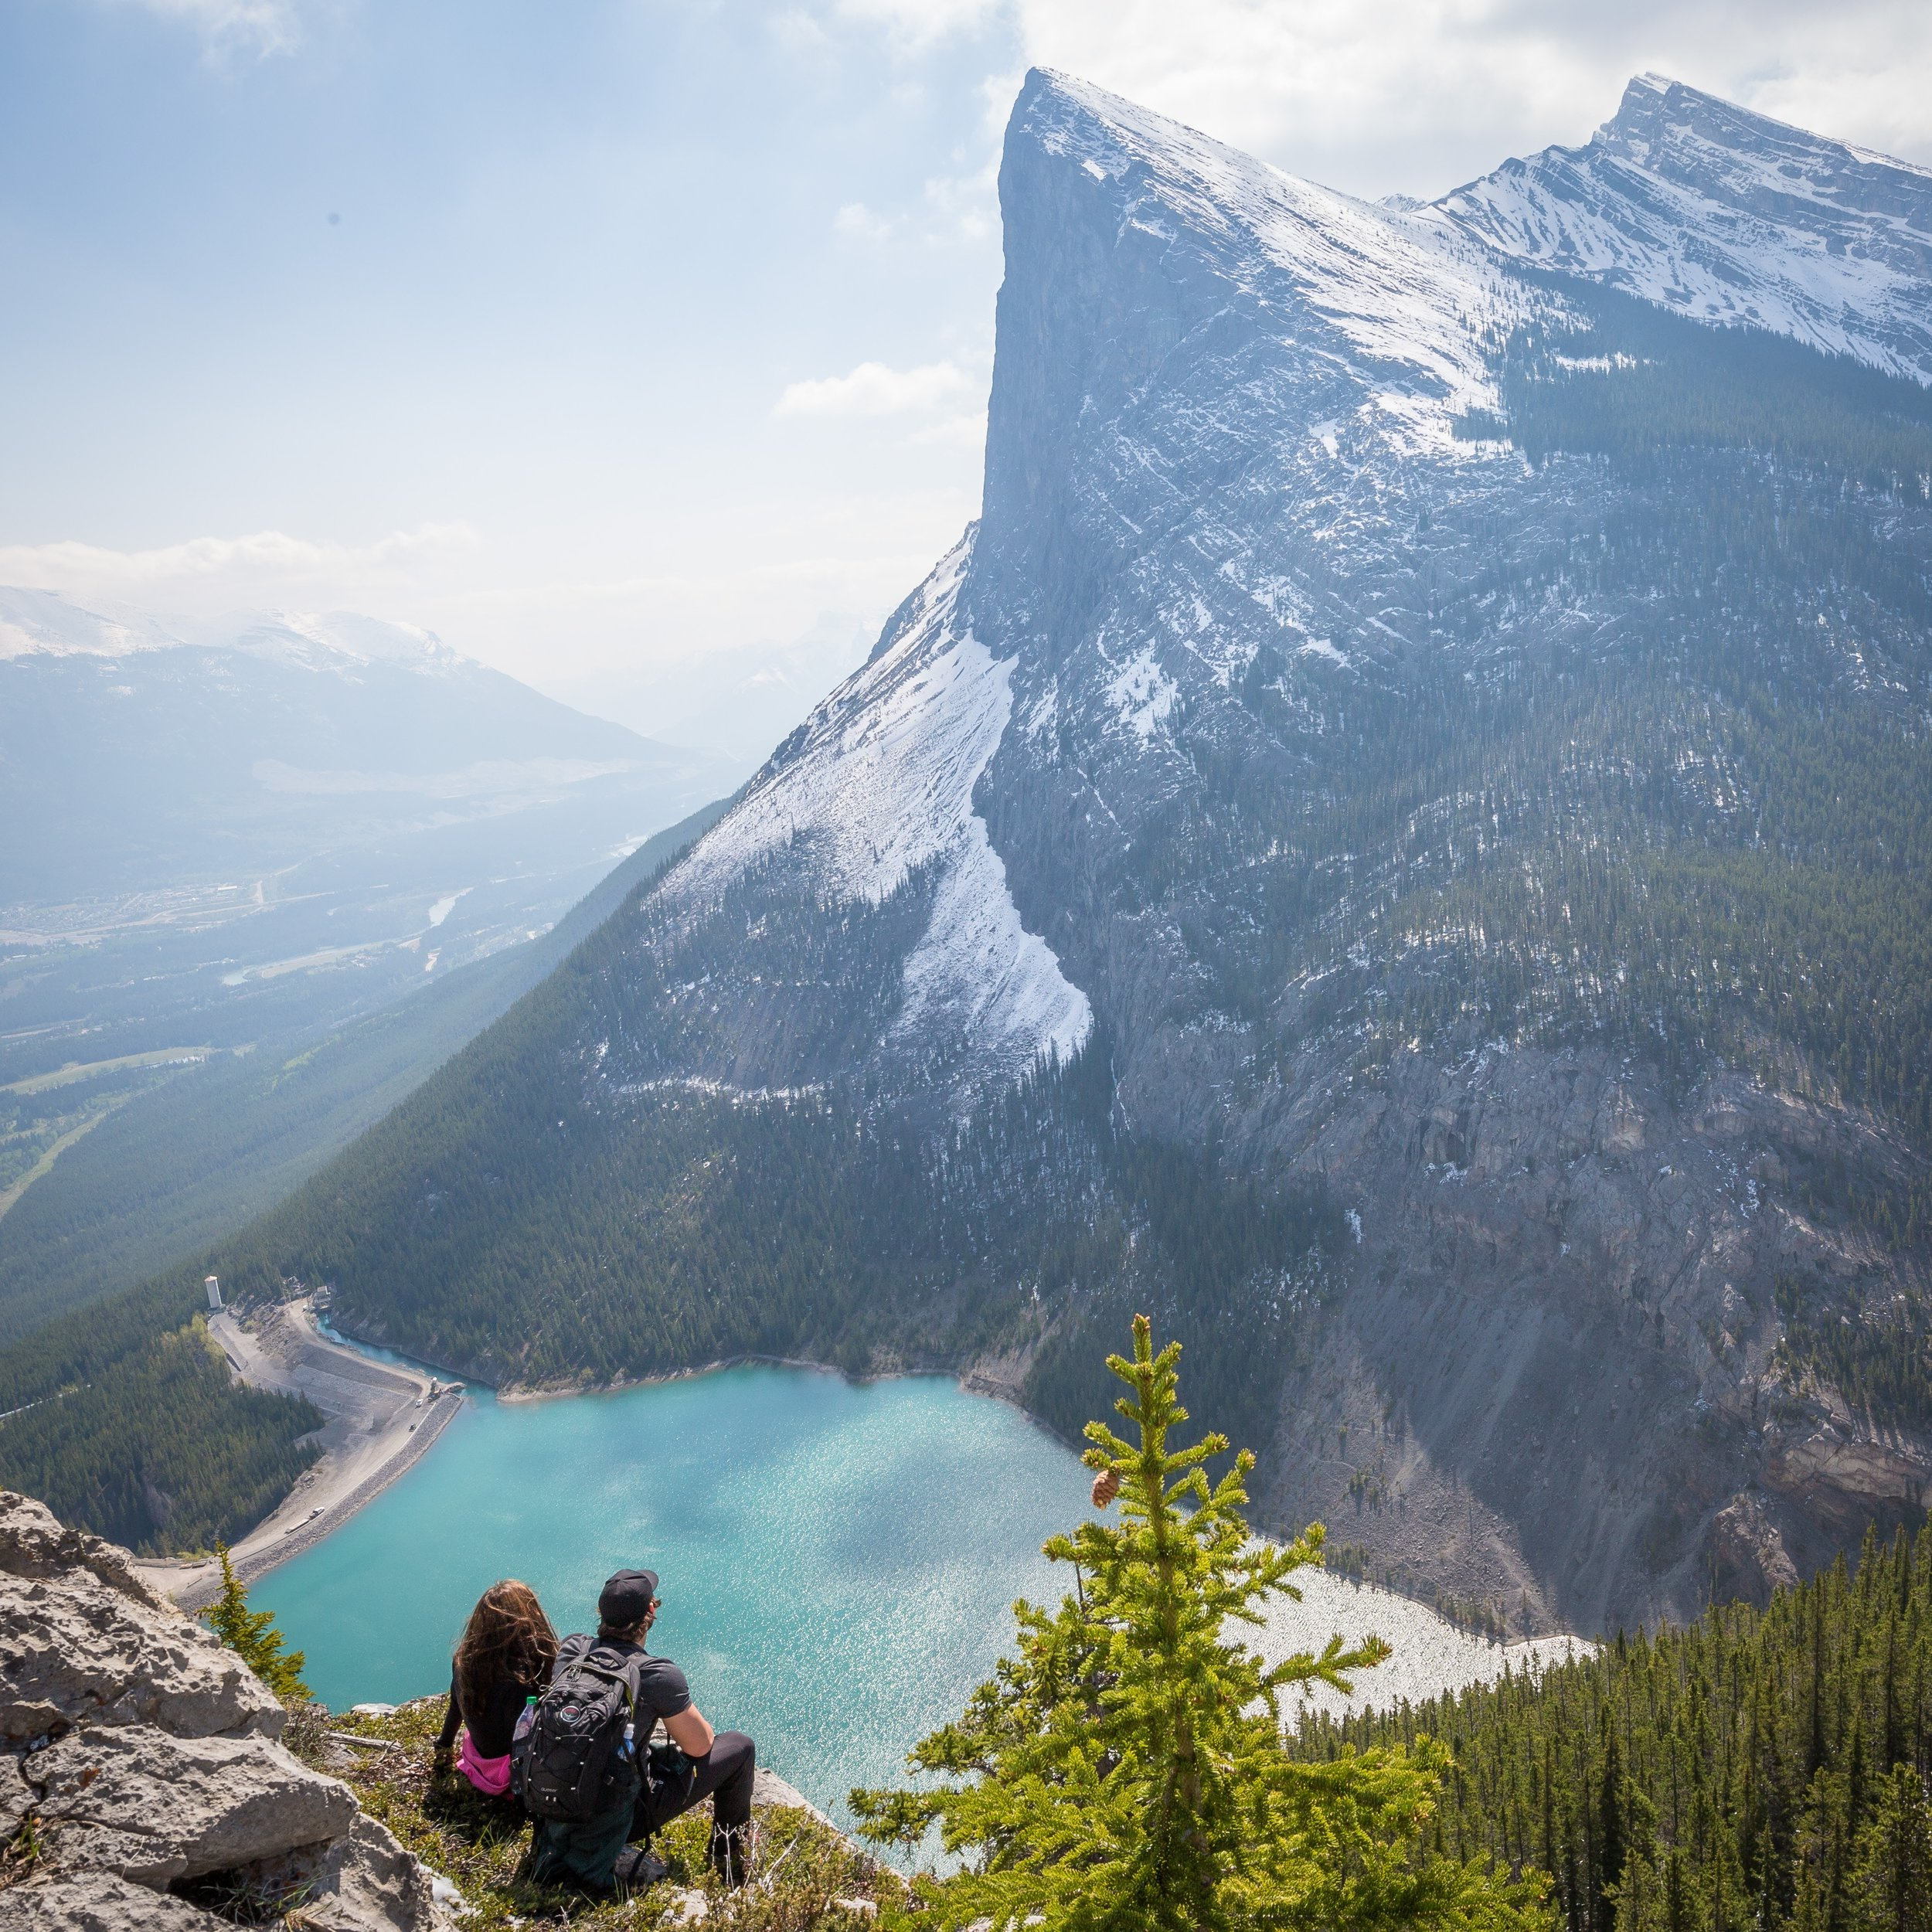 two hikers sitting on a peak overlooking turquoise lake and mountains